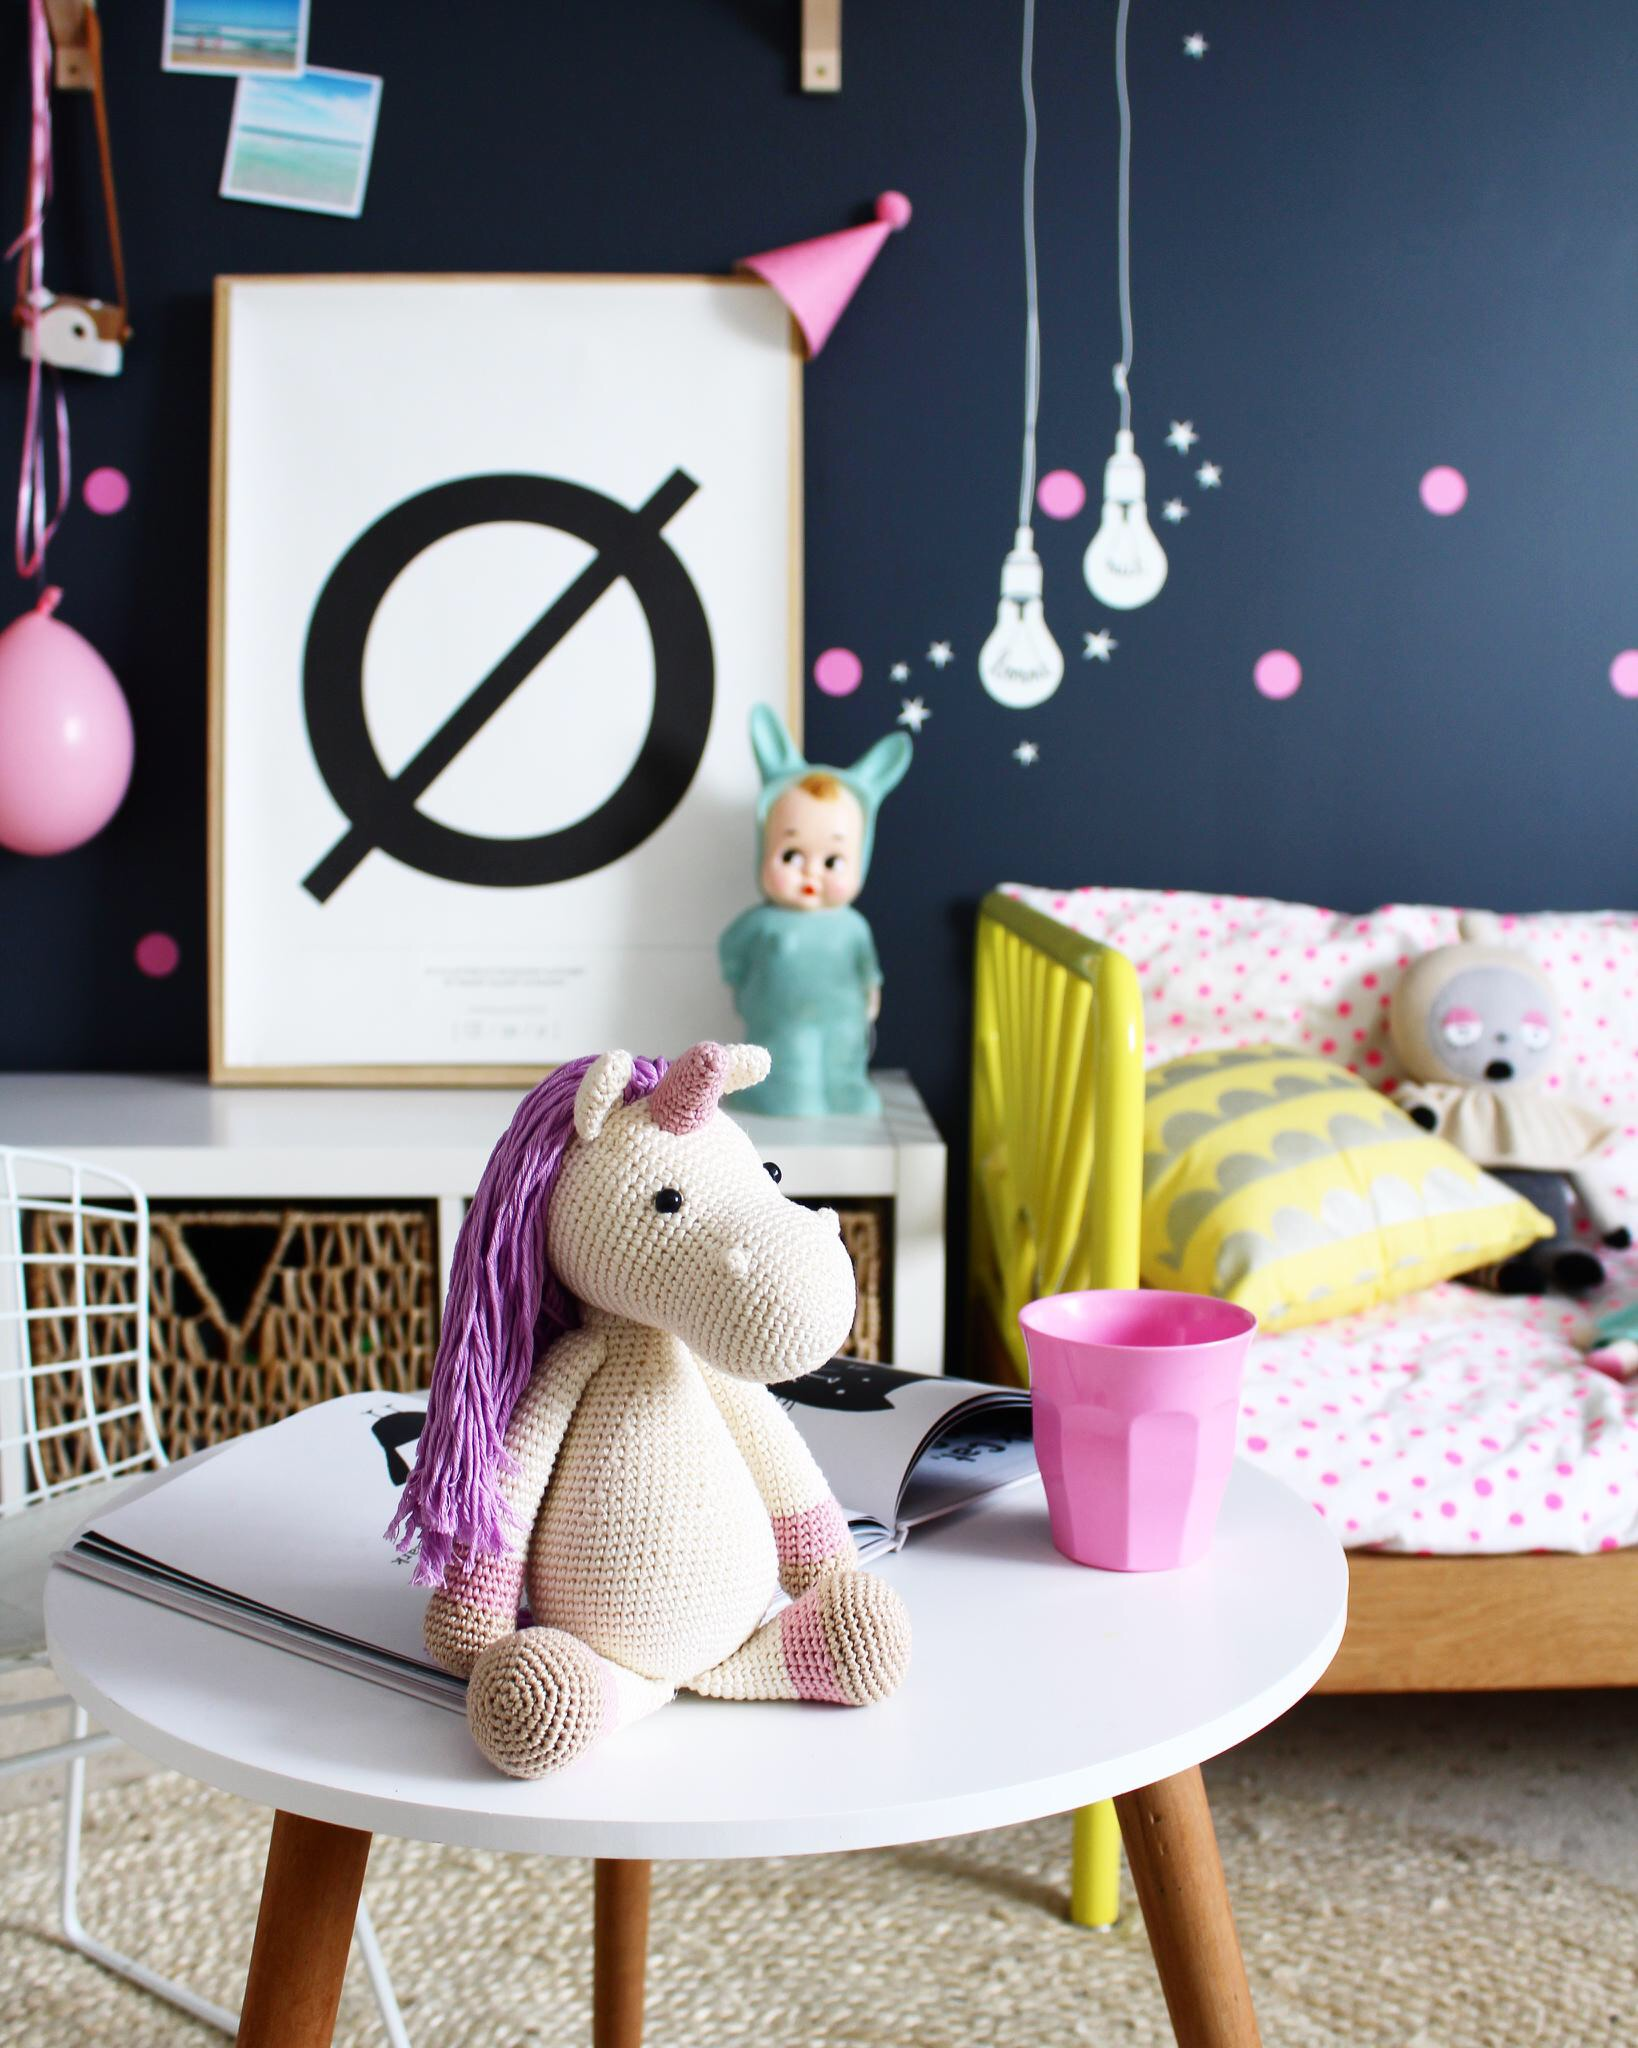 Kids' bedroom ideas - interiors and decor - using MIMI'lou designer decals www.fourcheekymonkeys.com